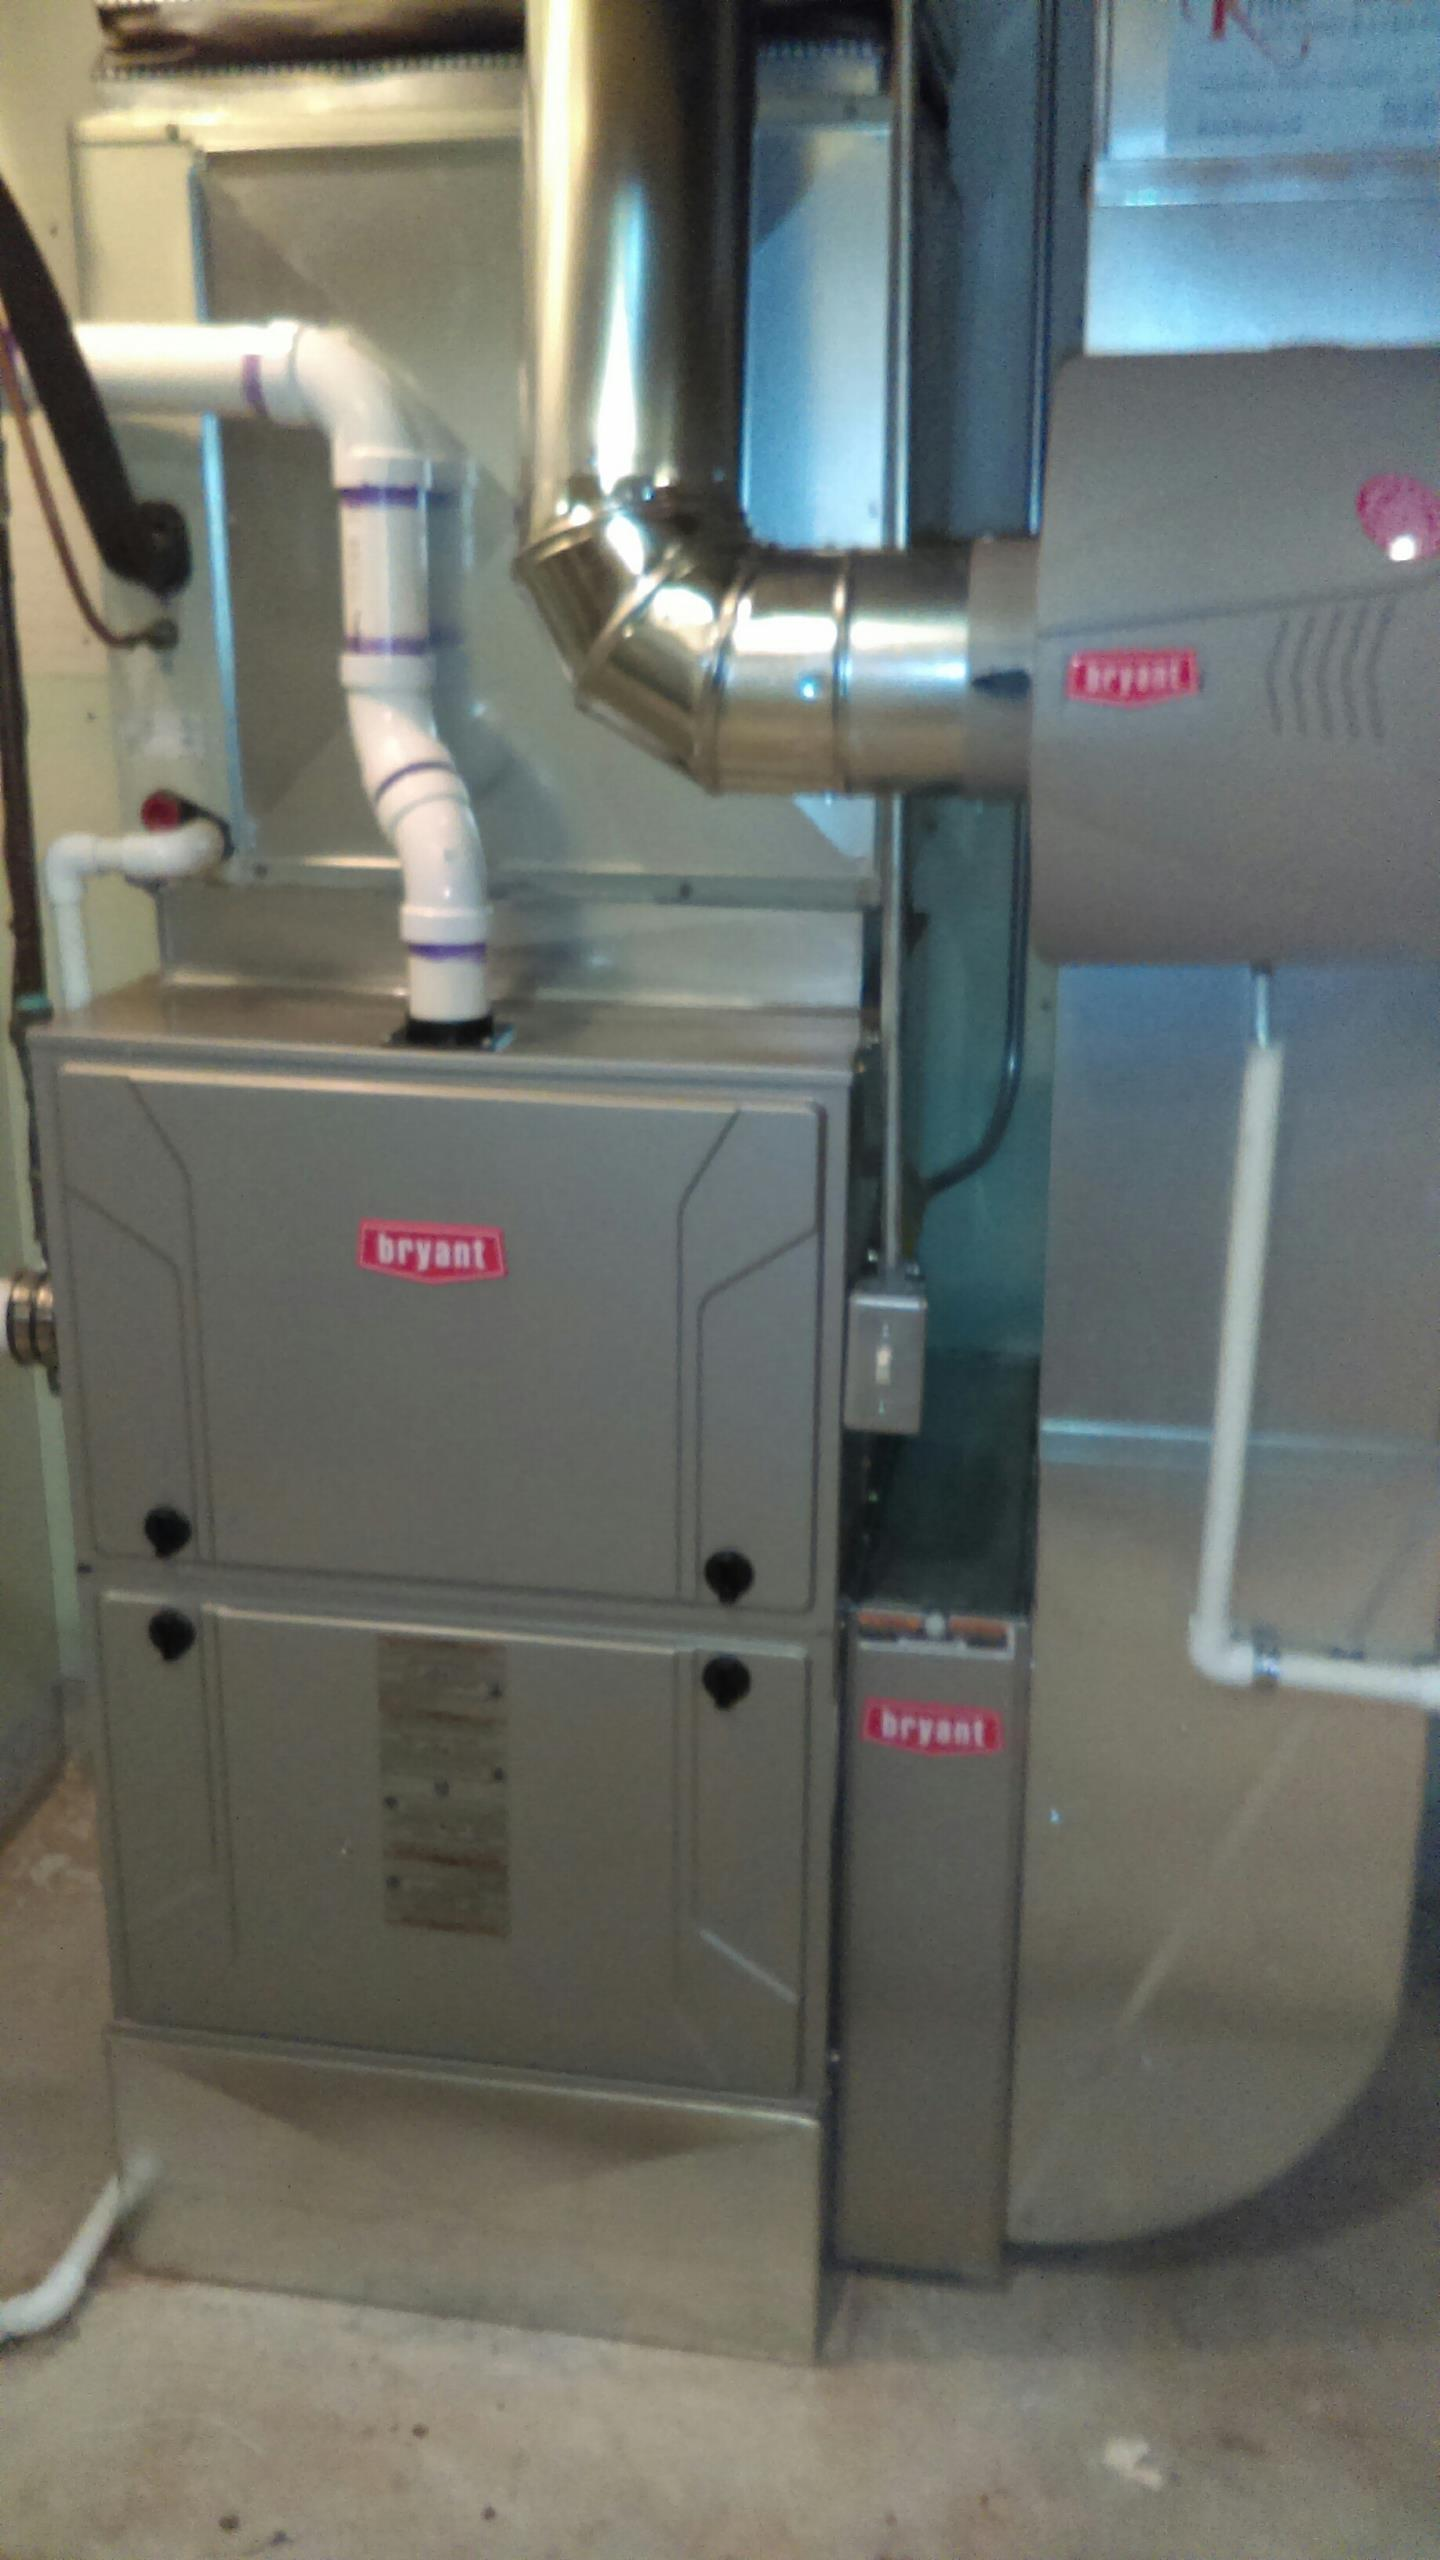 South Lyon, MI - Installed a new Bryant 96% efficient furnace